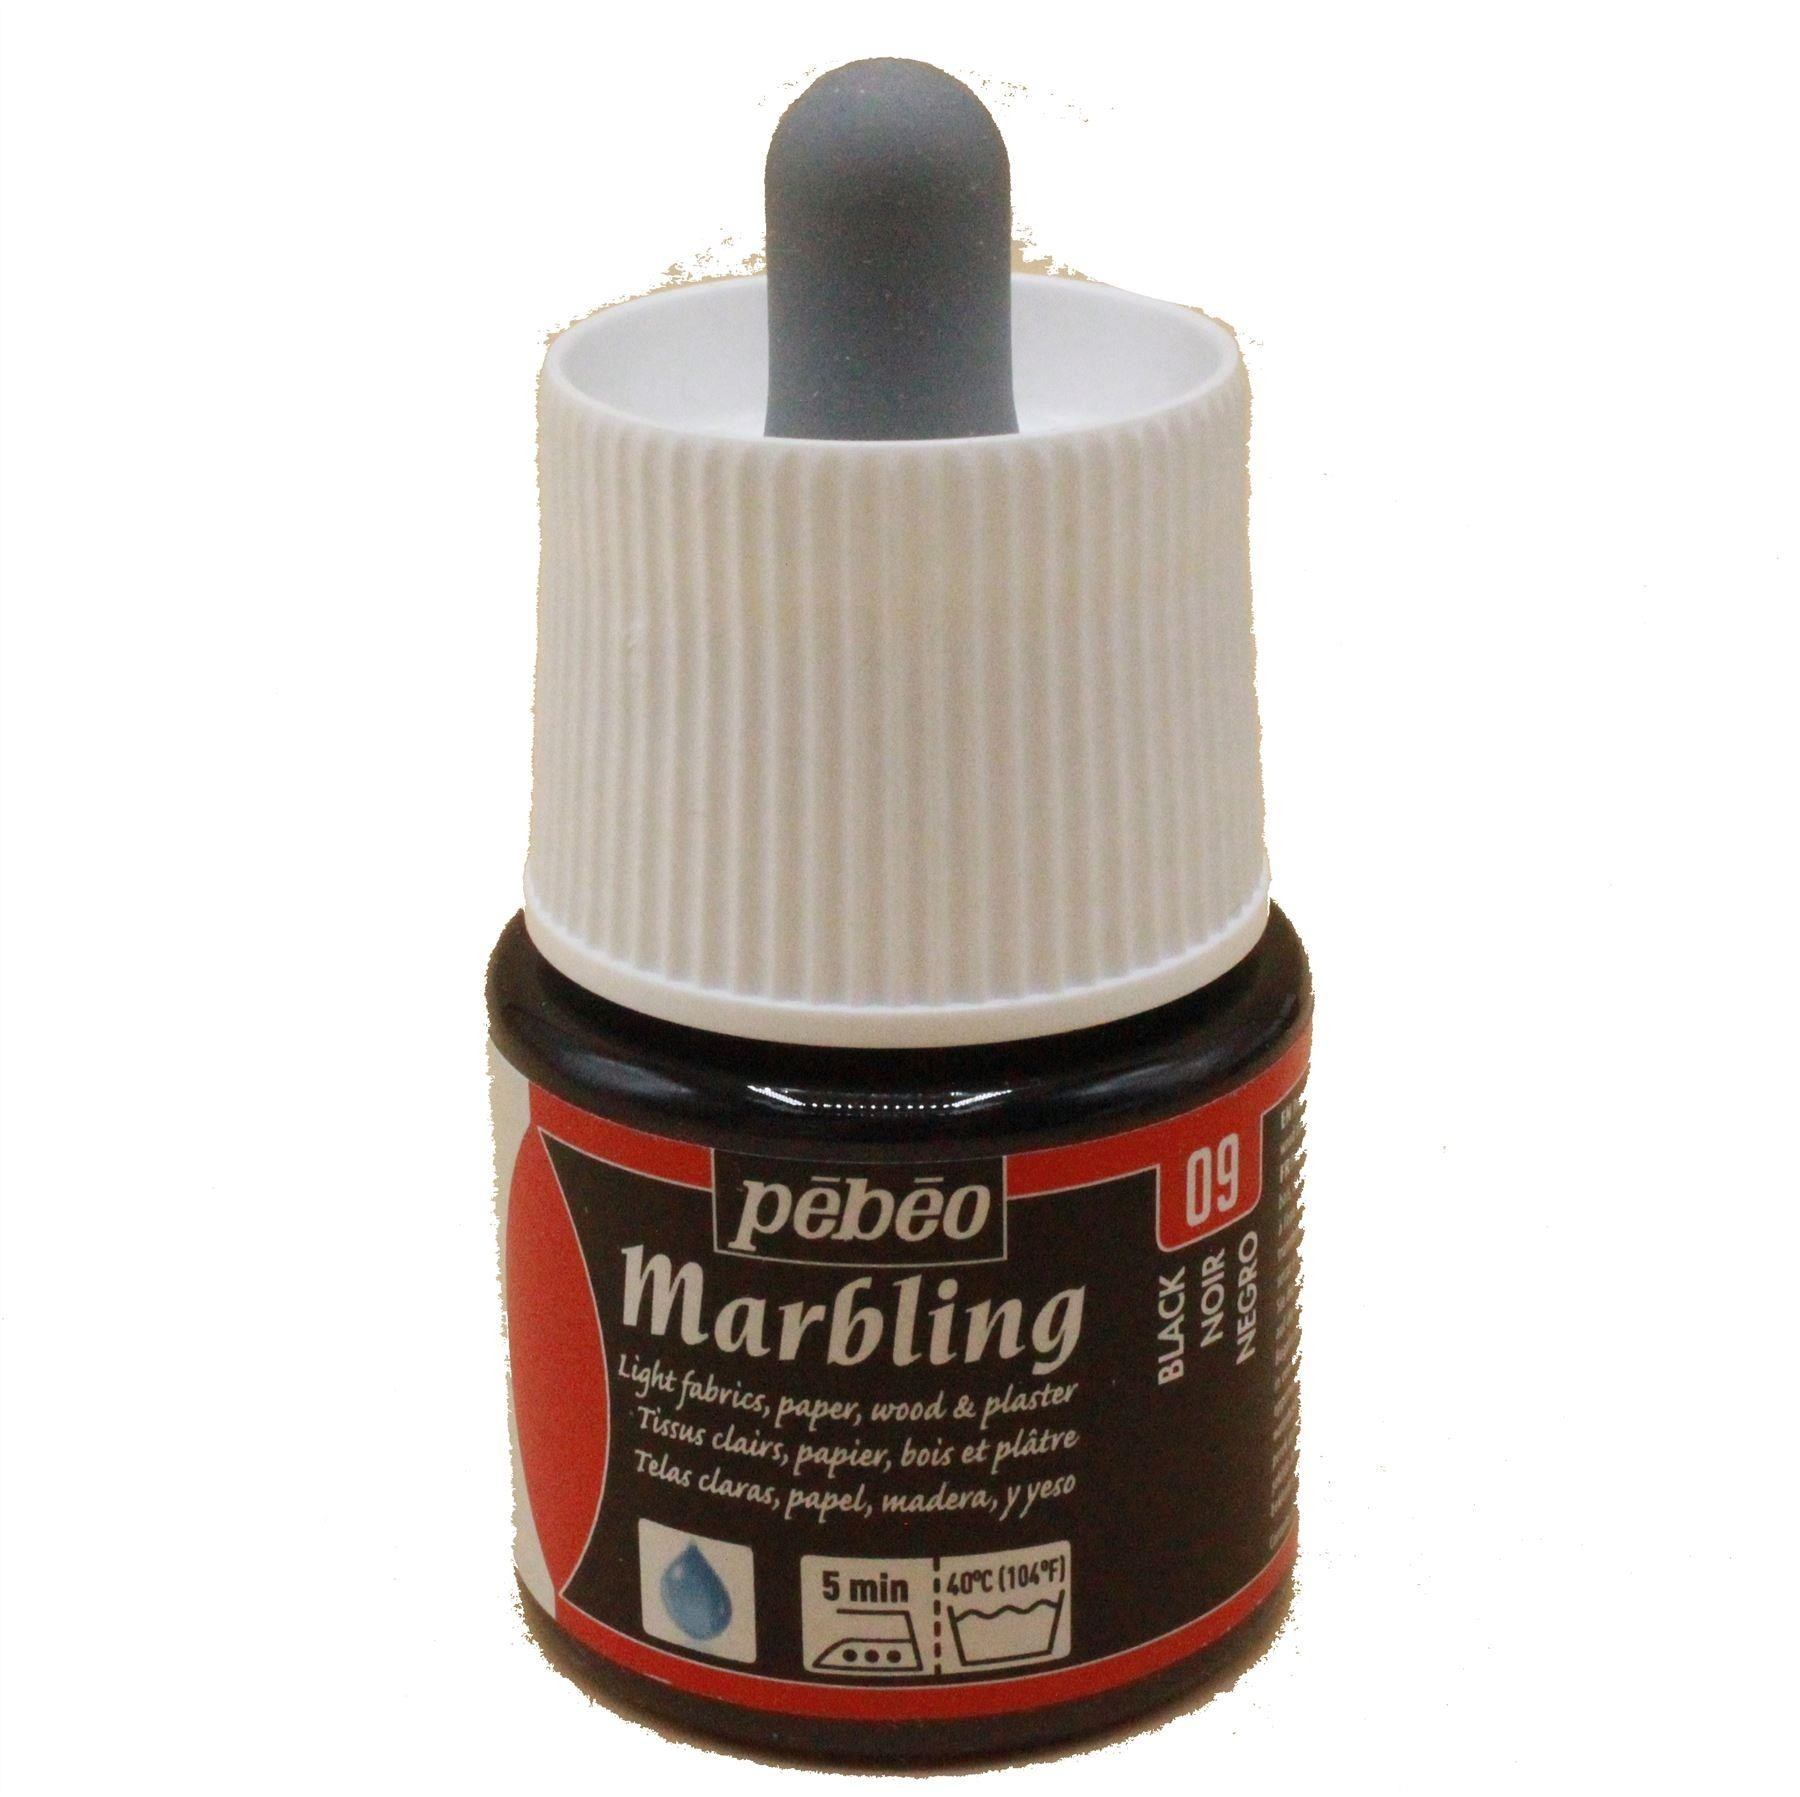 Pebeo Marbling light fabric paper wood or plastc paint, 45ml or bath